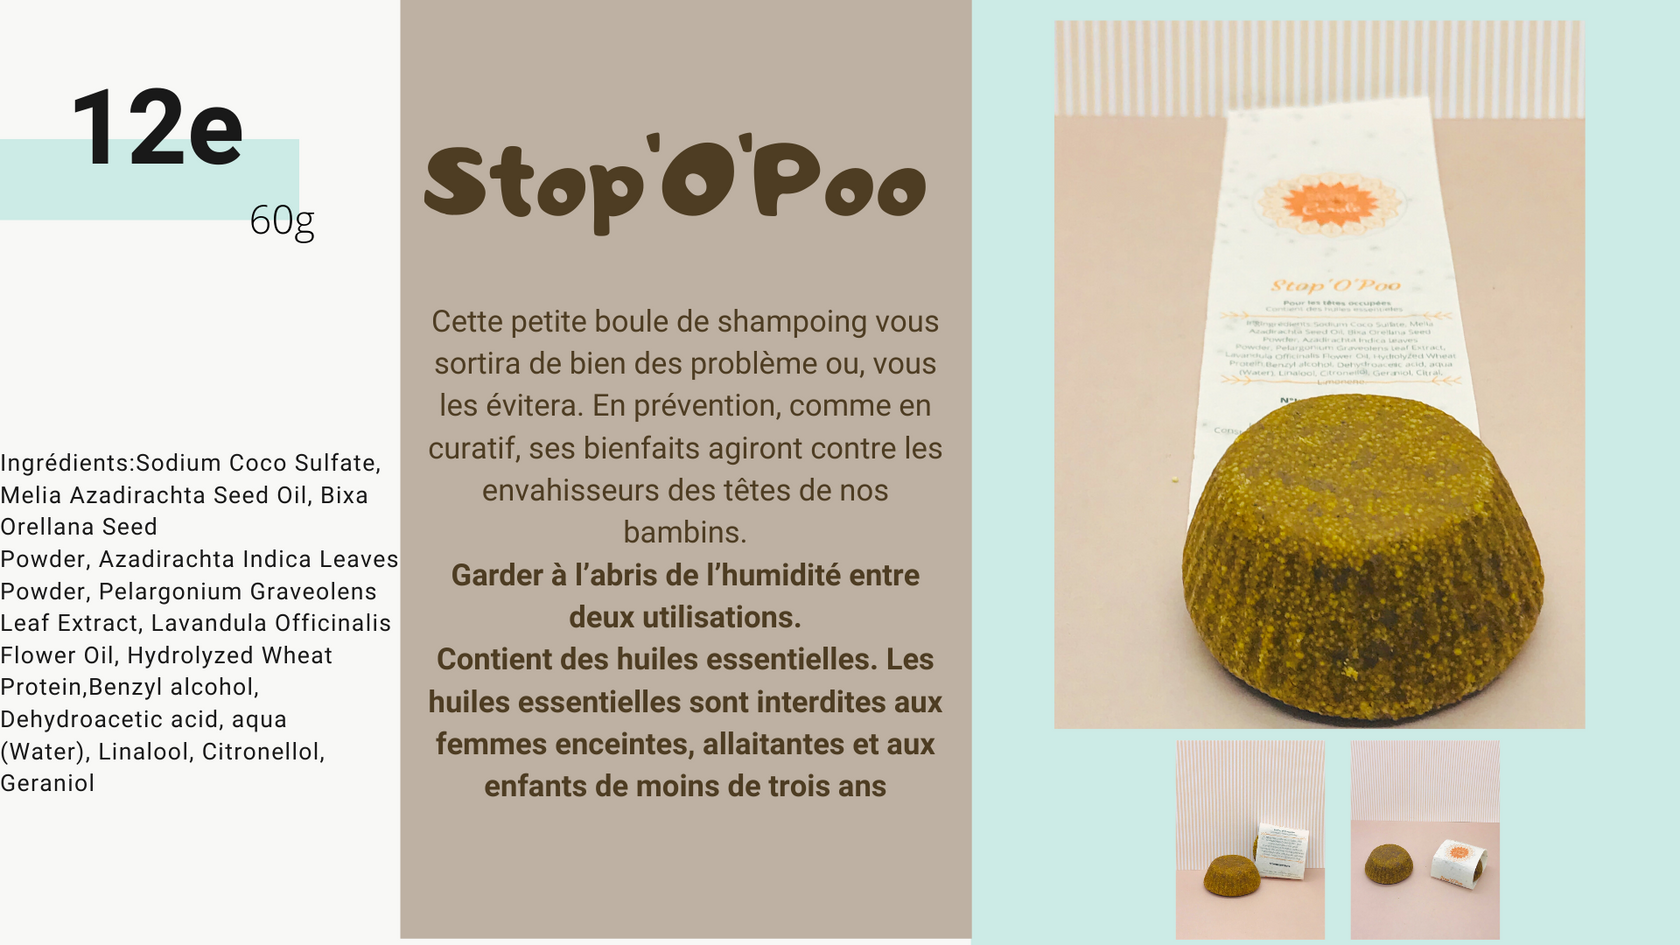 Fiche article Stop'o'poo.png